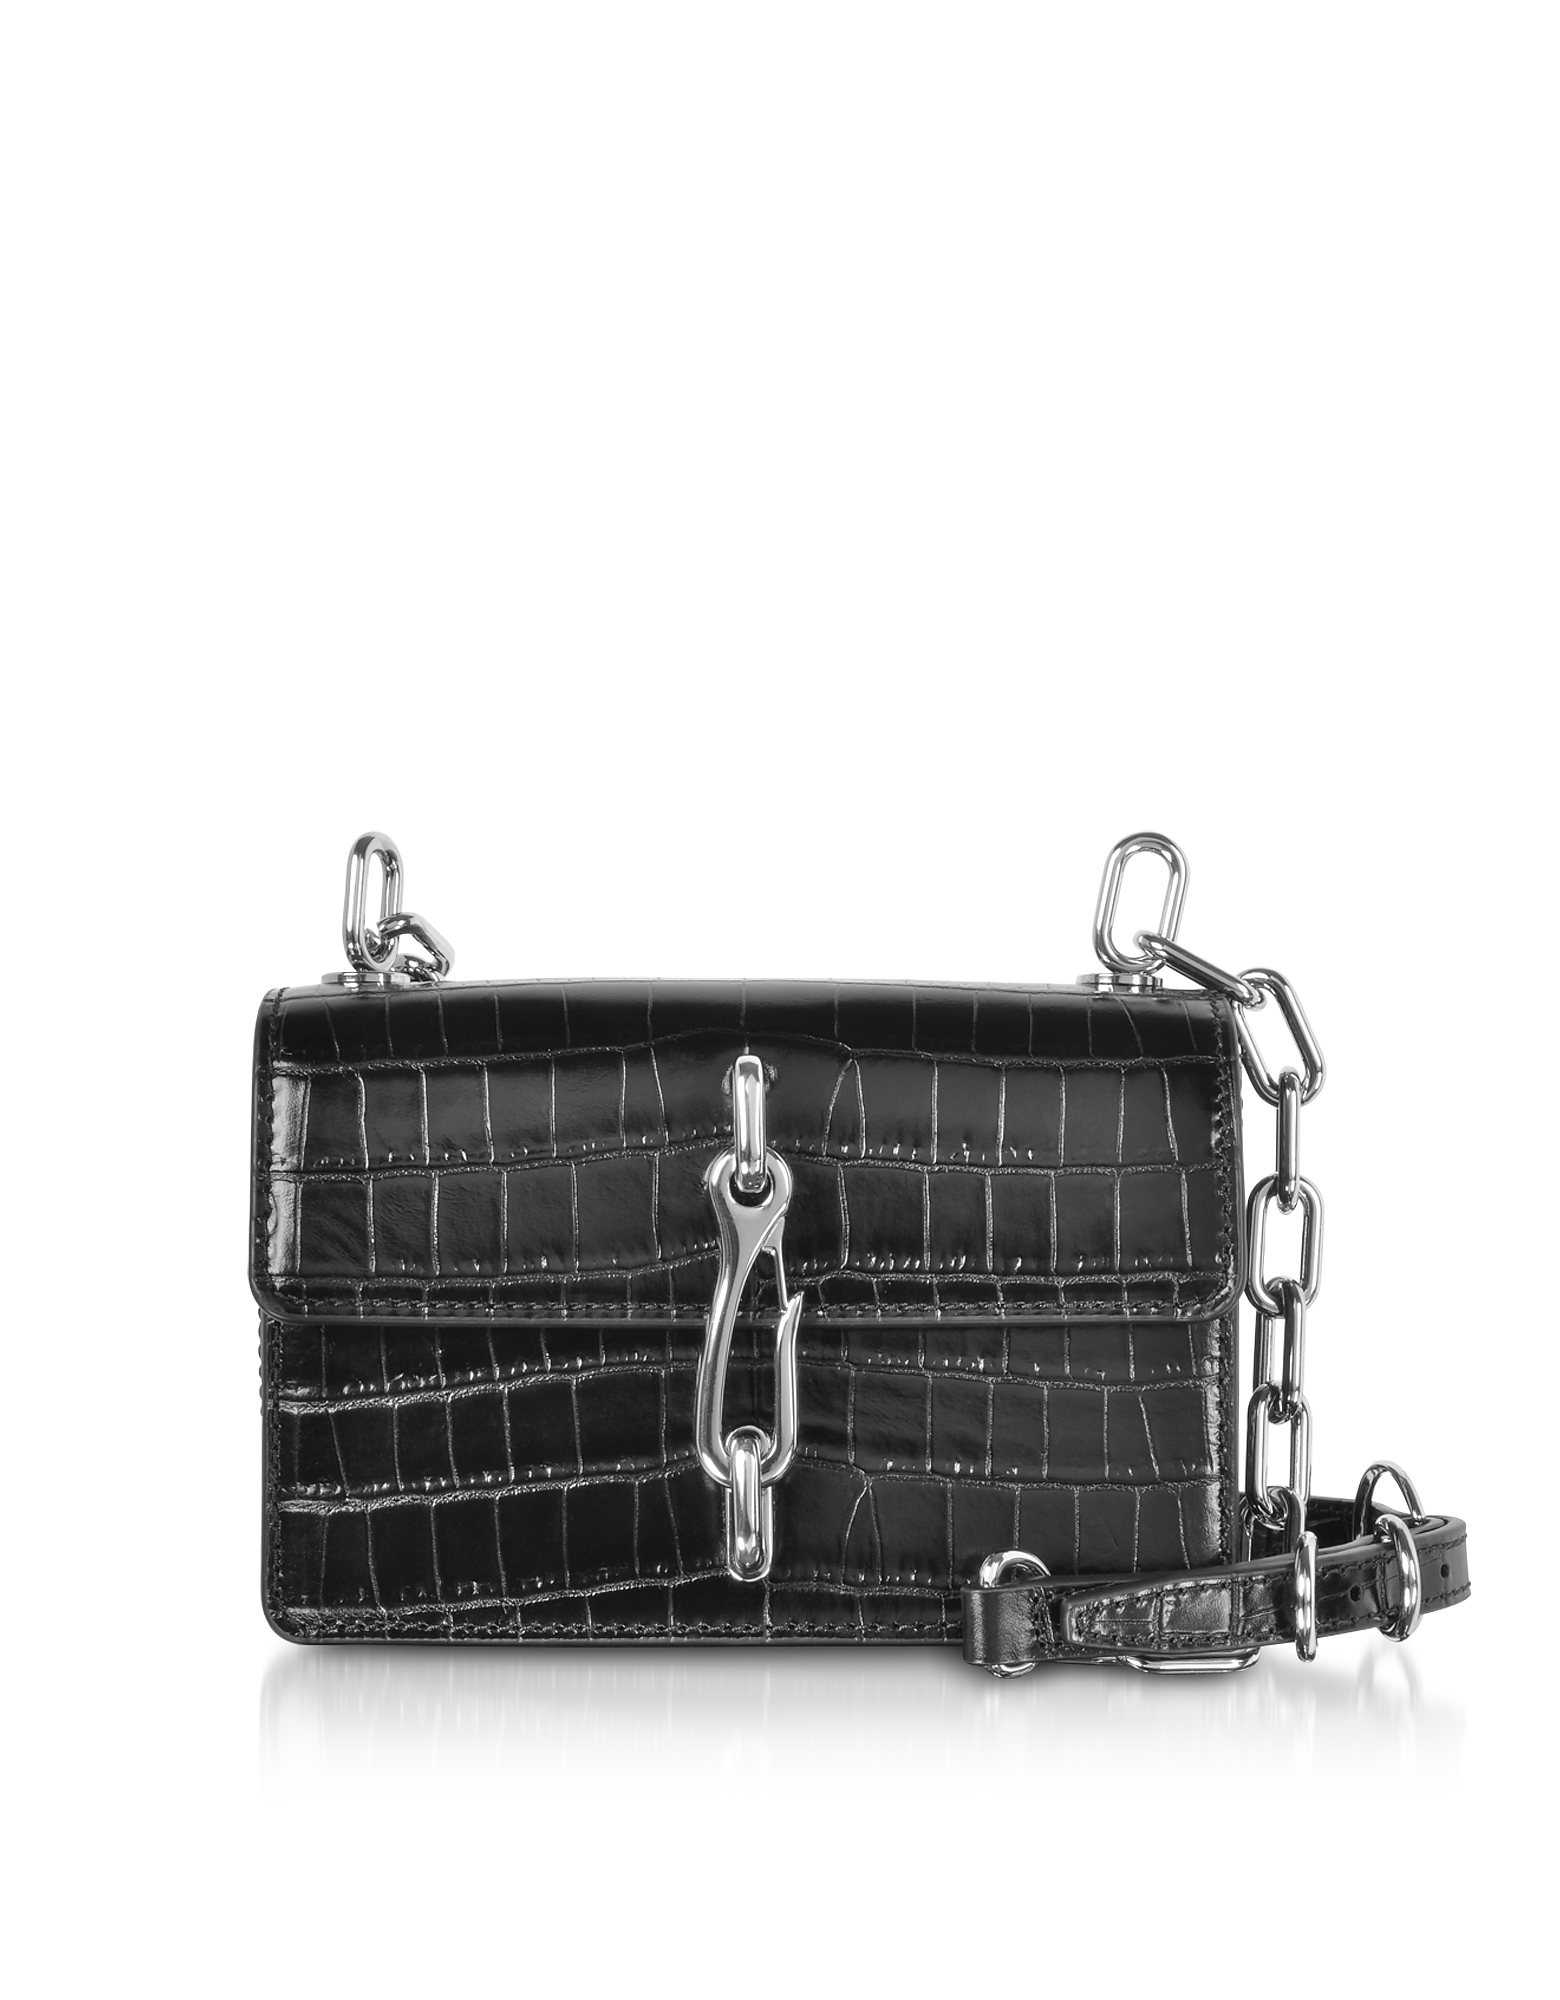 Alexander Wang Handbags, Black Croco Embossed Leather Hook Small Xbody Bag